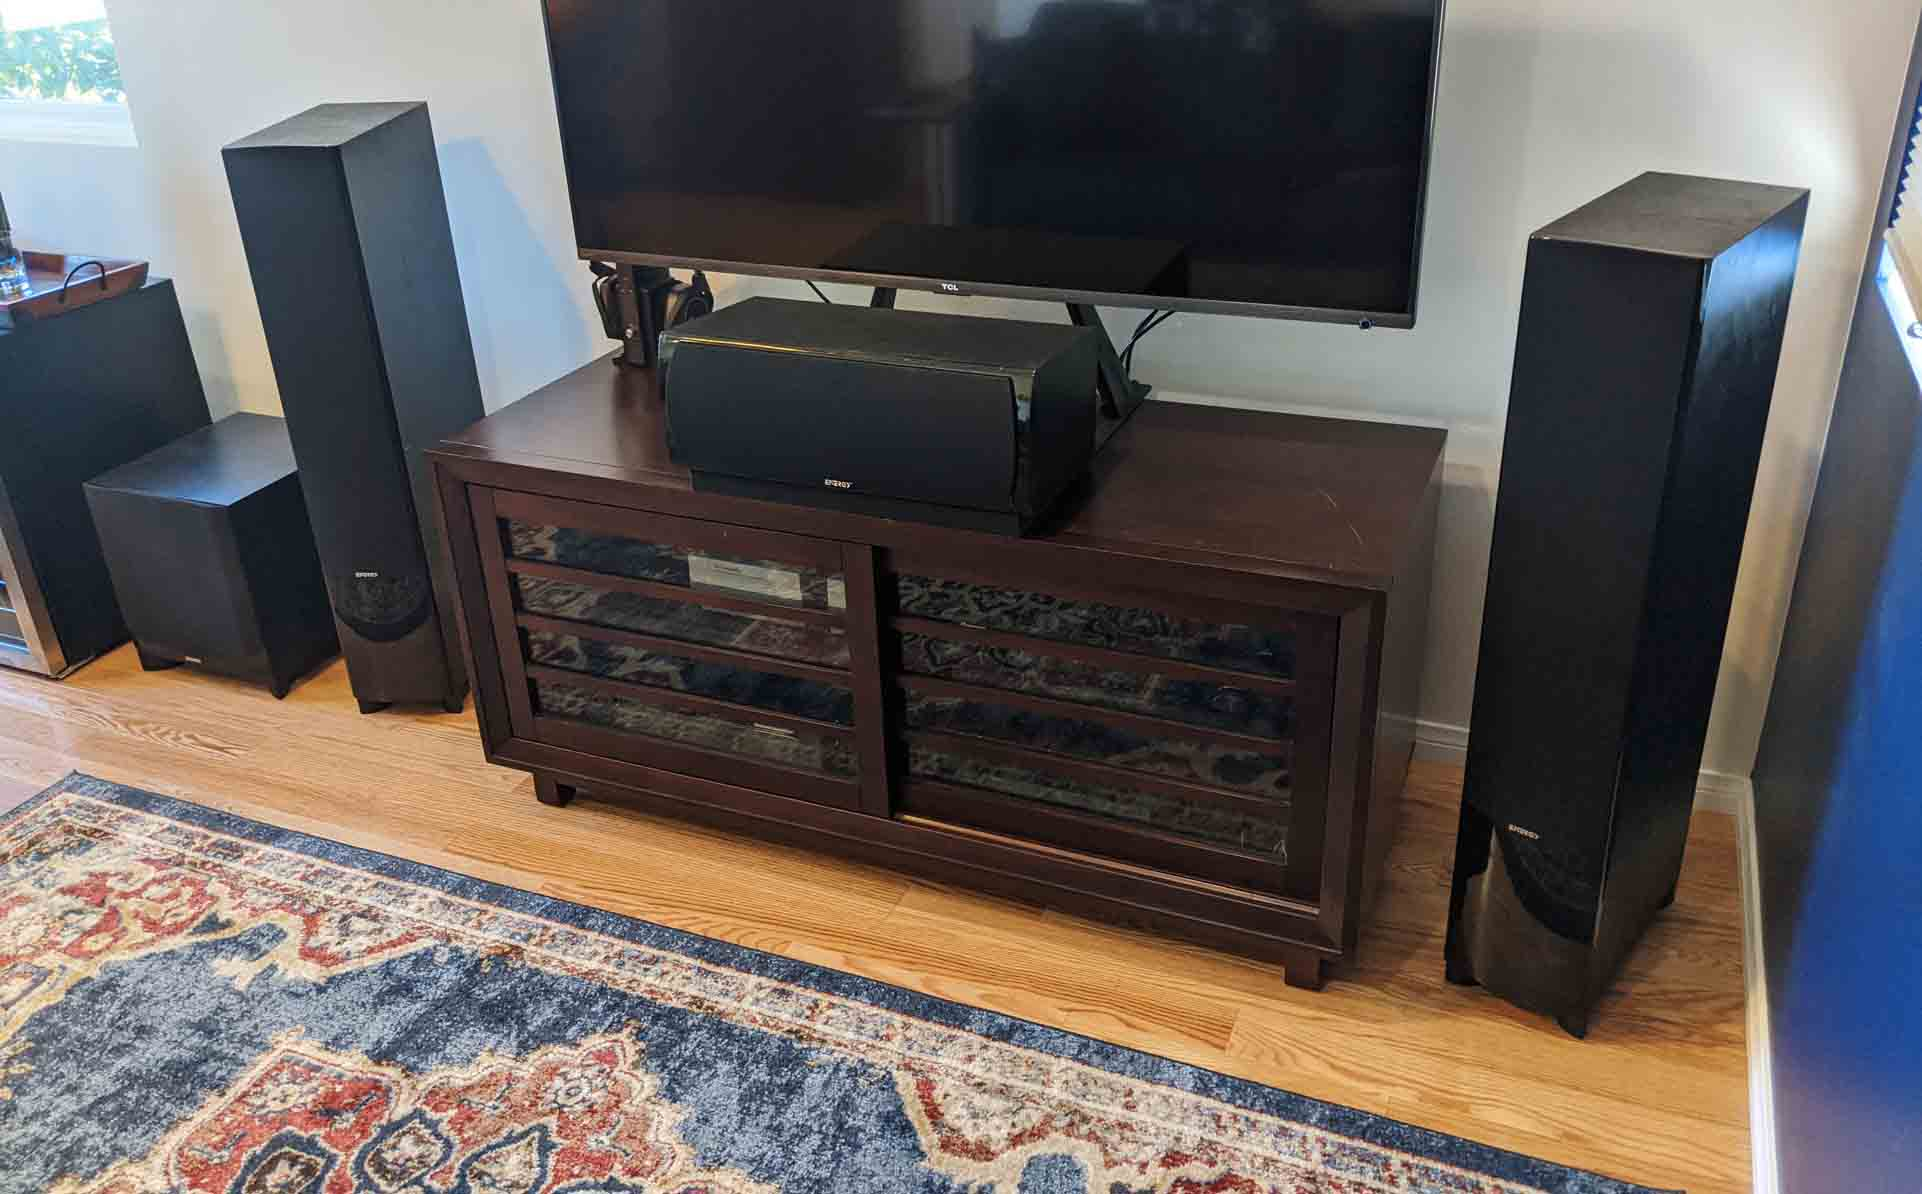 A set of speakers set up in a home theater setting.